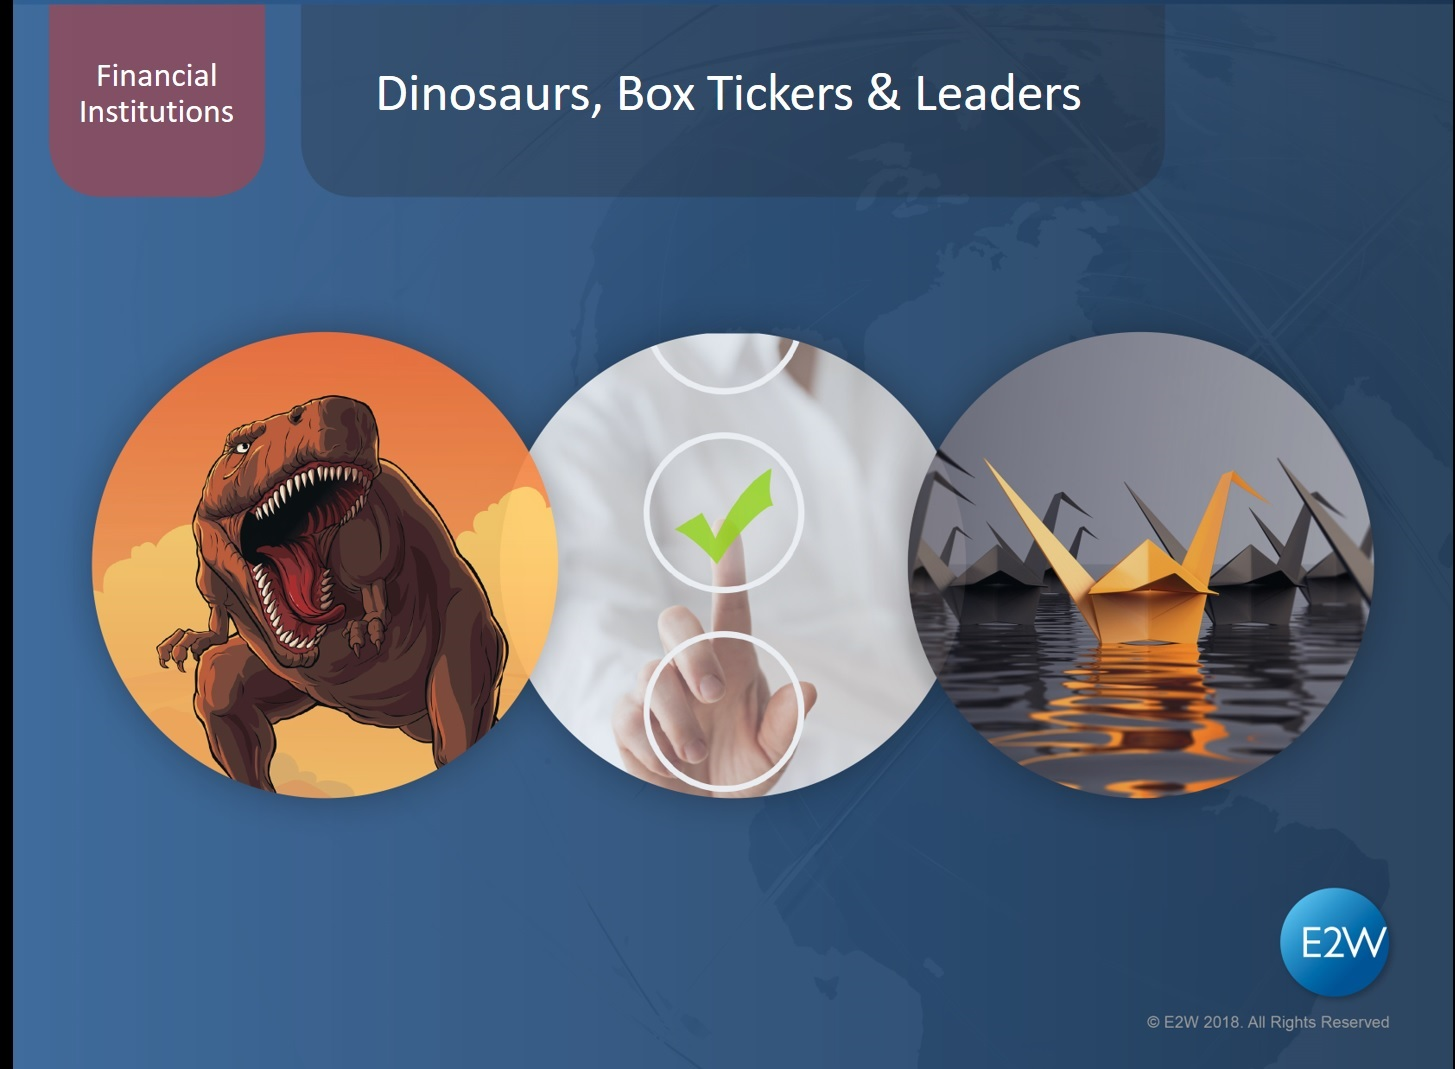 Dinosaurs, Box Tickers & Leaders